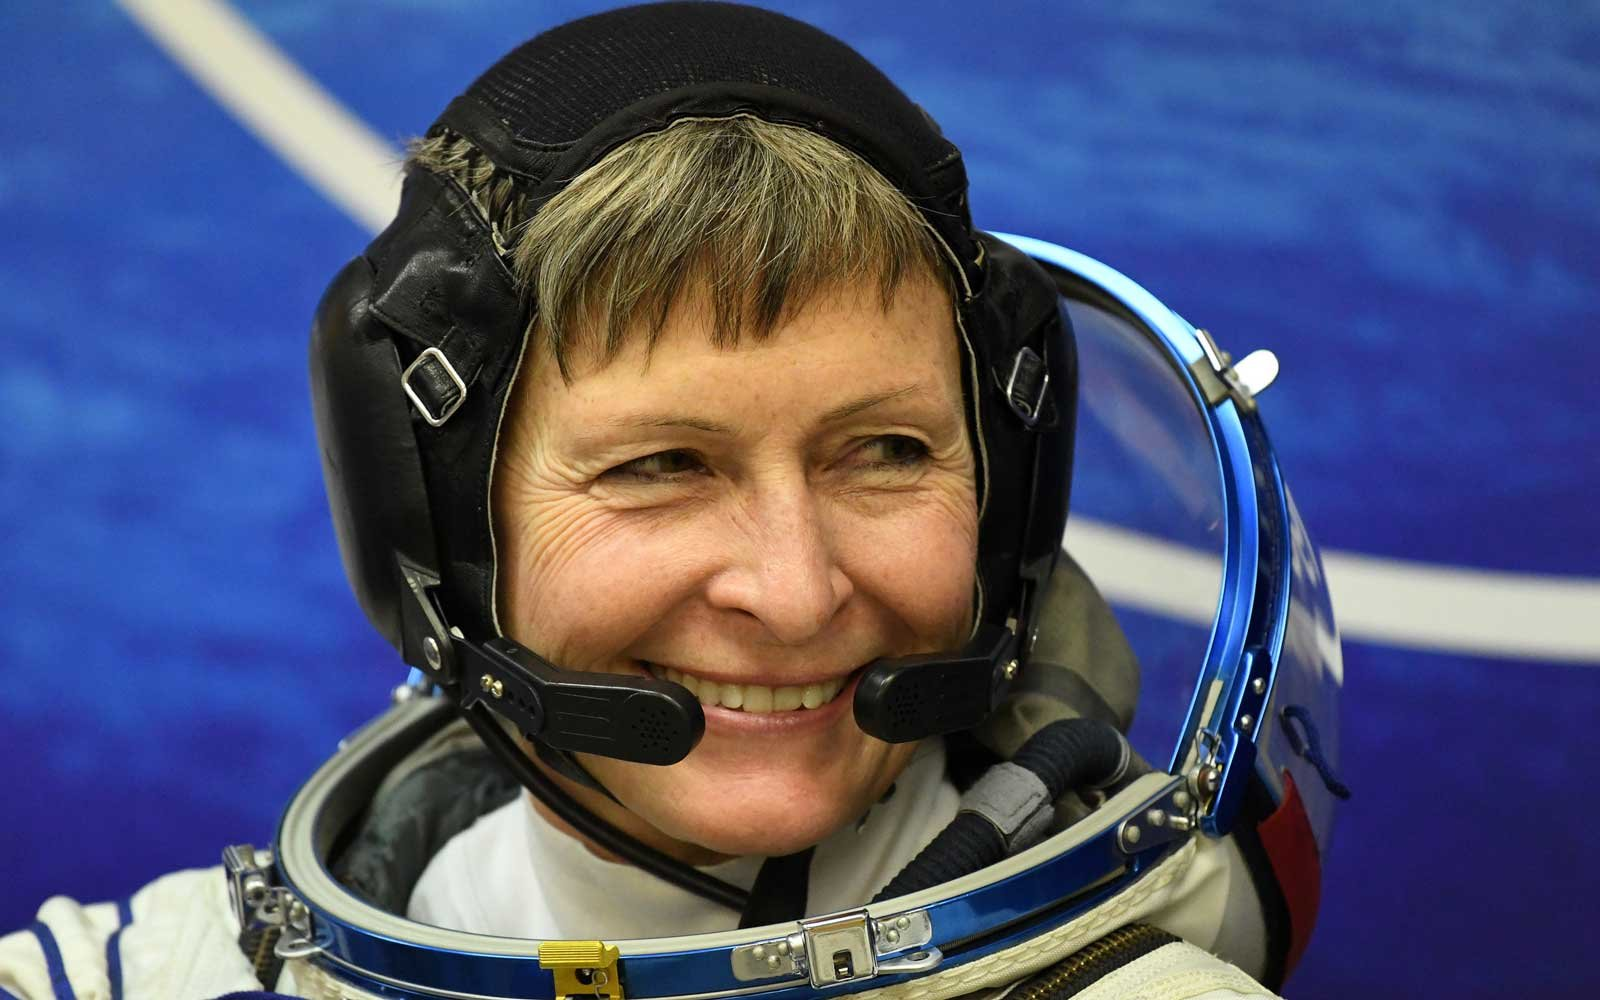 Oldest Female Astronaut in Space